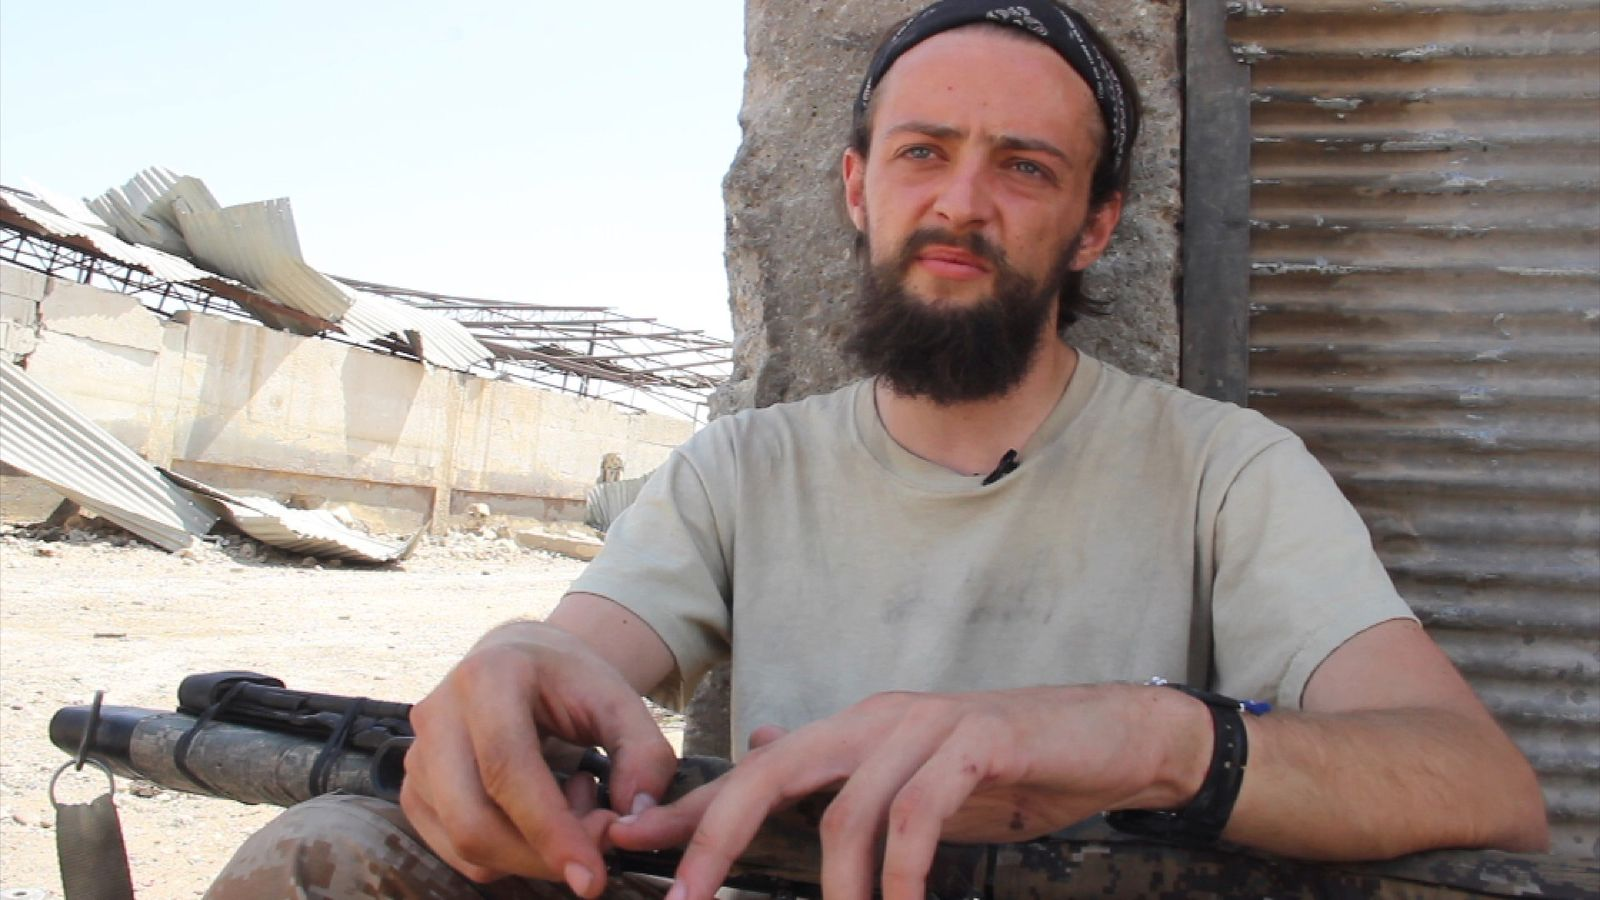 Jack Holmes travelled to Syria to fight with the Kurdish YPG group